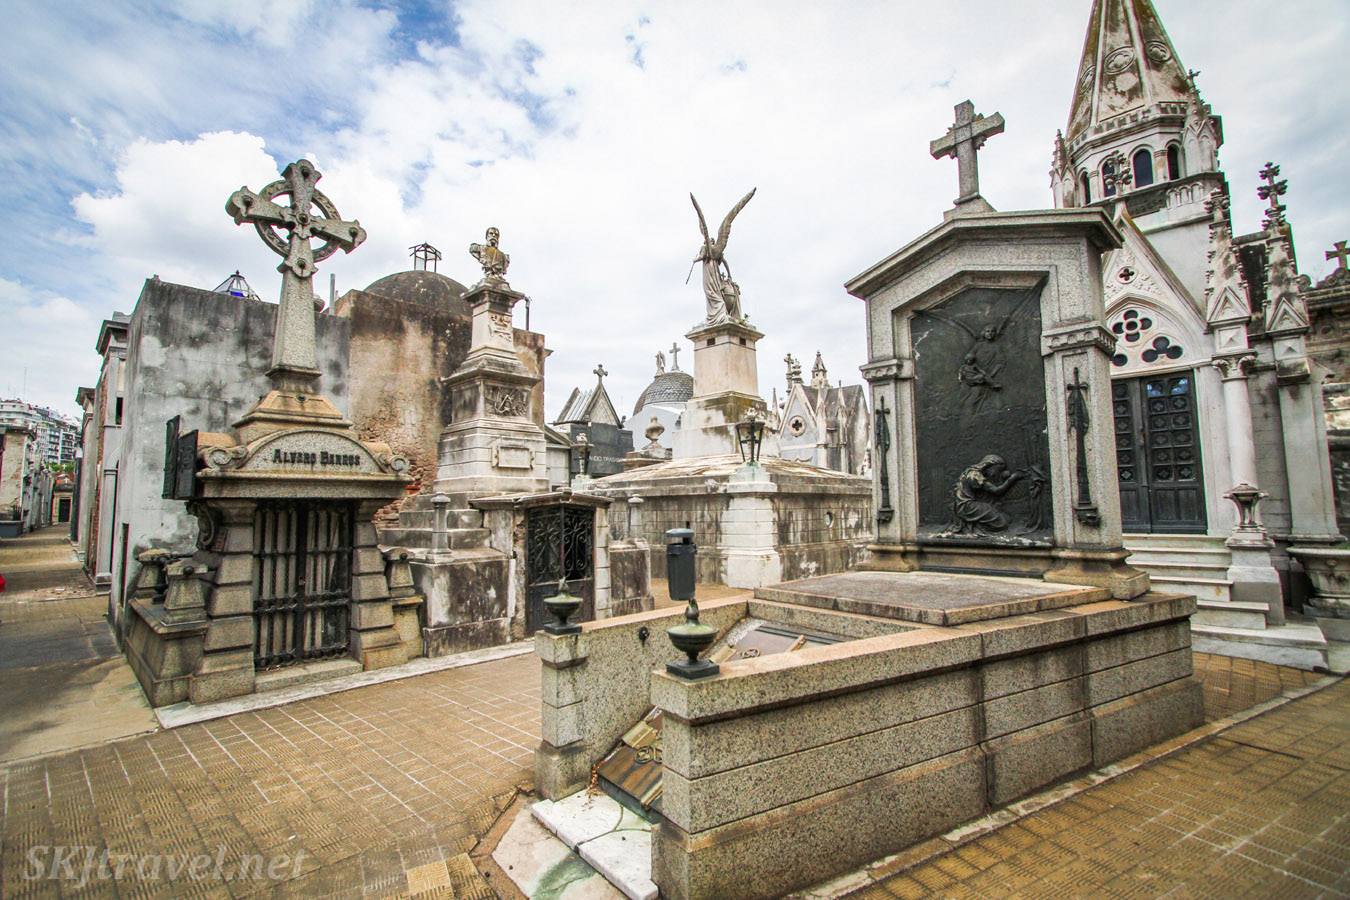 A street in Recoleta Cemetery, Buenos Aires, Argentina, showing the skyline stone statues and crosses.